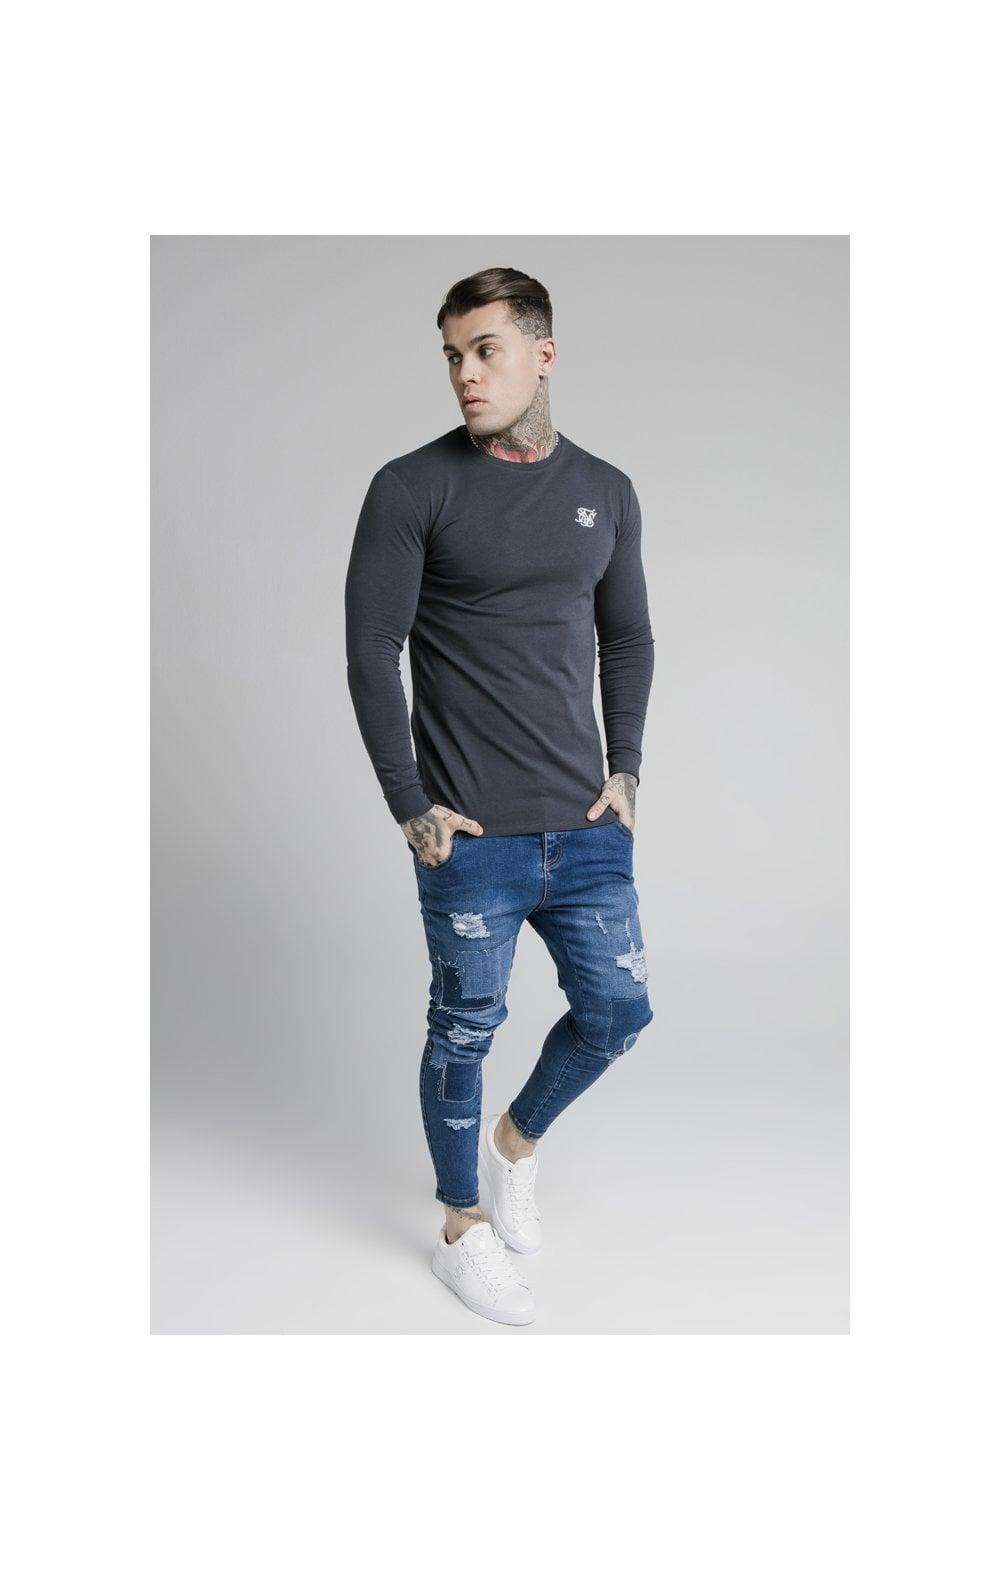 SikSilk L/S Straight Hem Gym Tee – Navy (2)